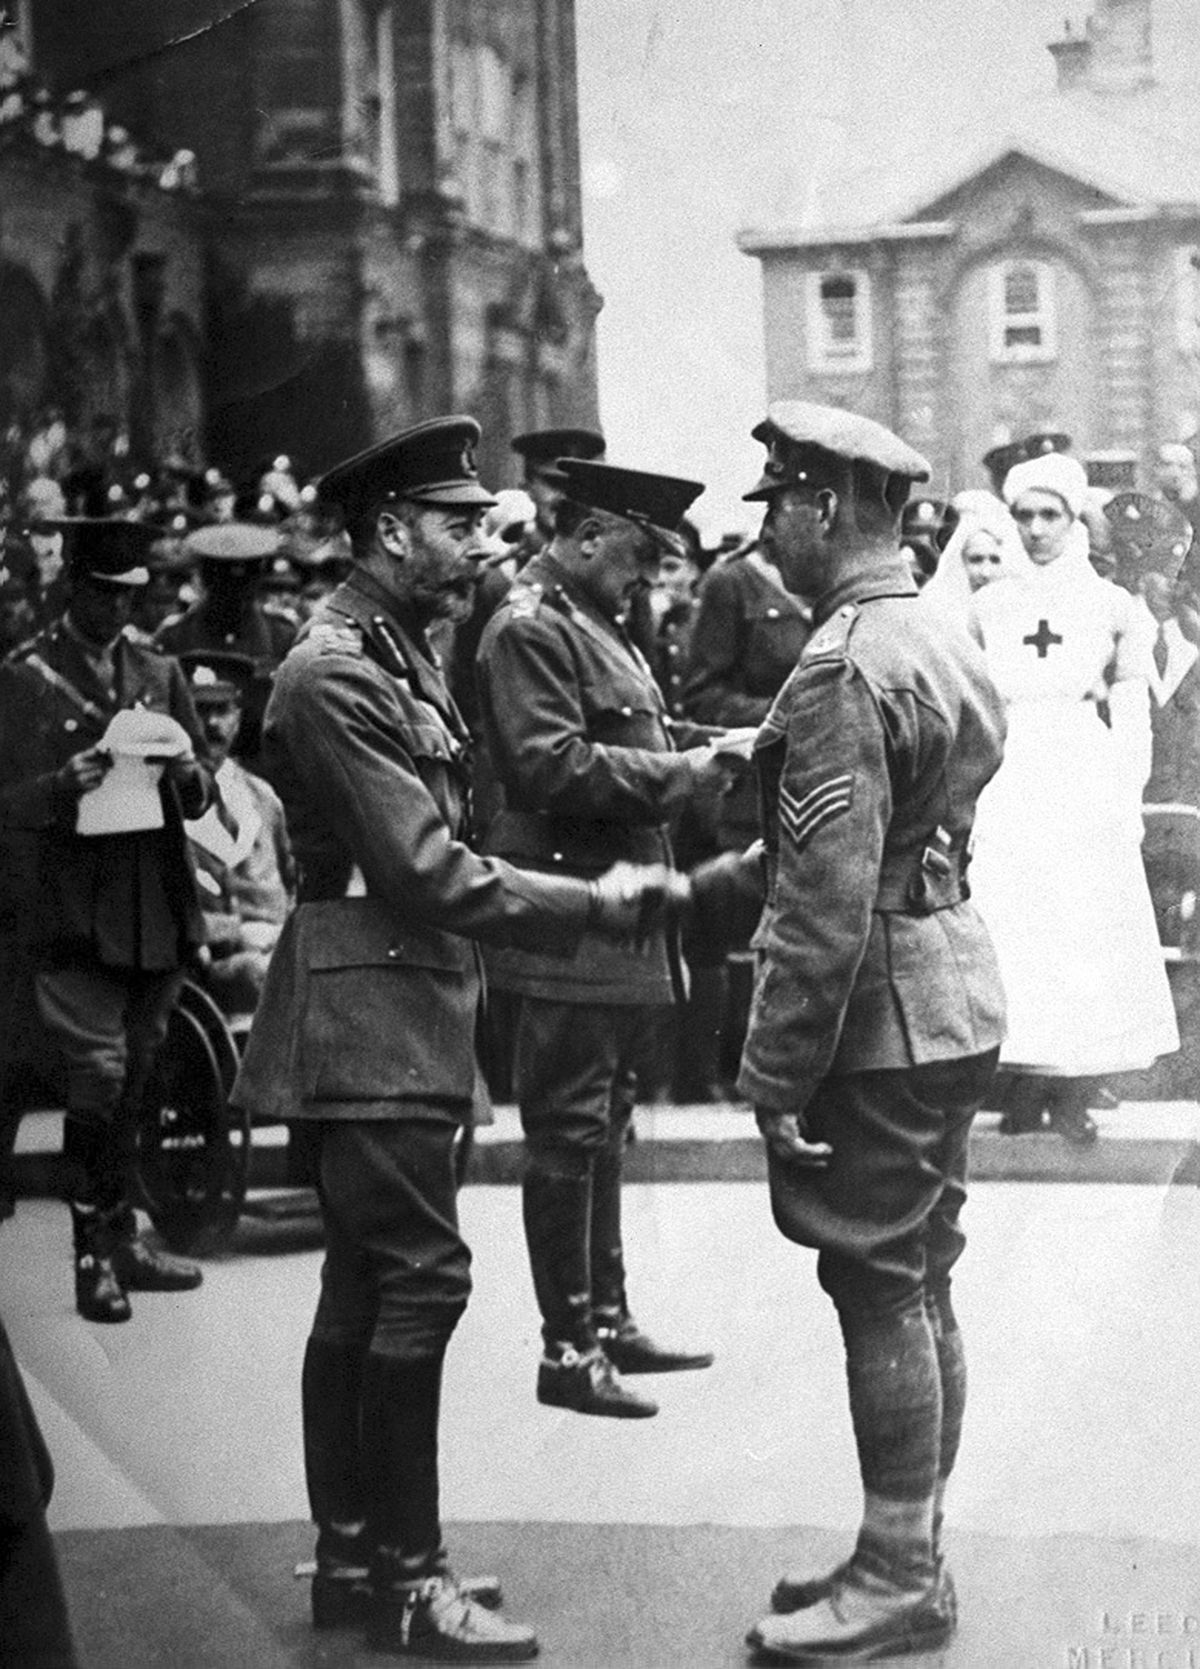 Sergeant Whitfield receives the Victoria Cross from King George V.